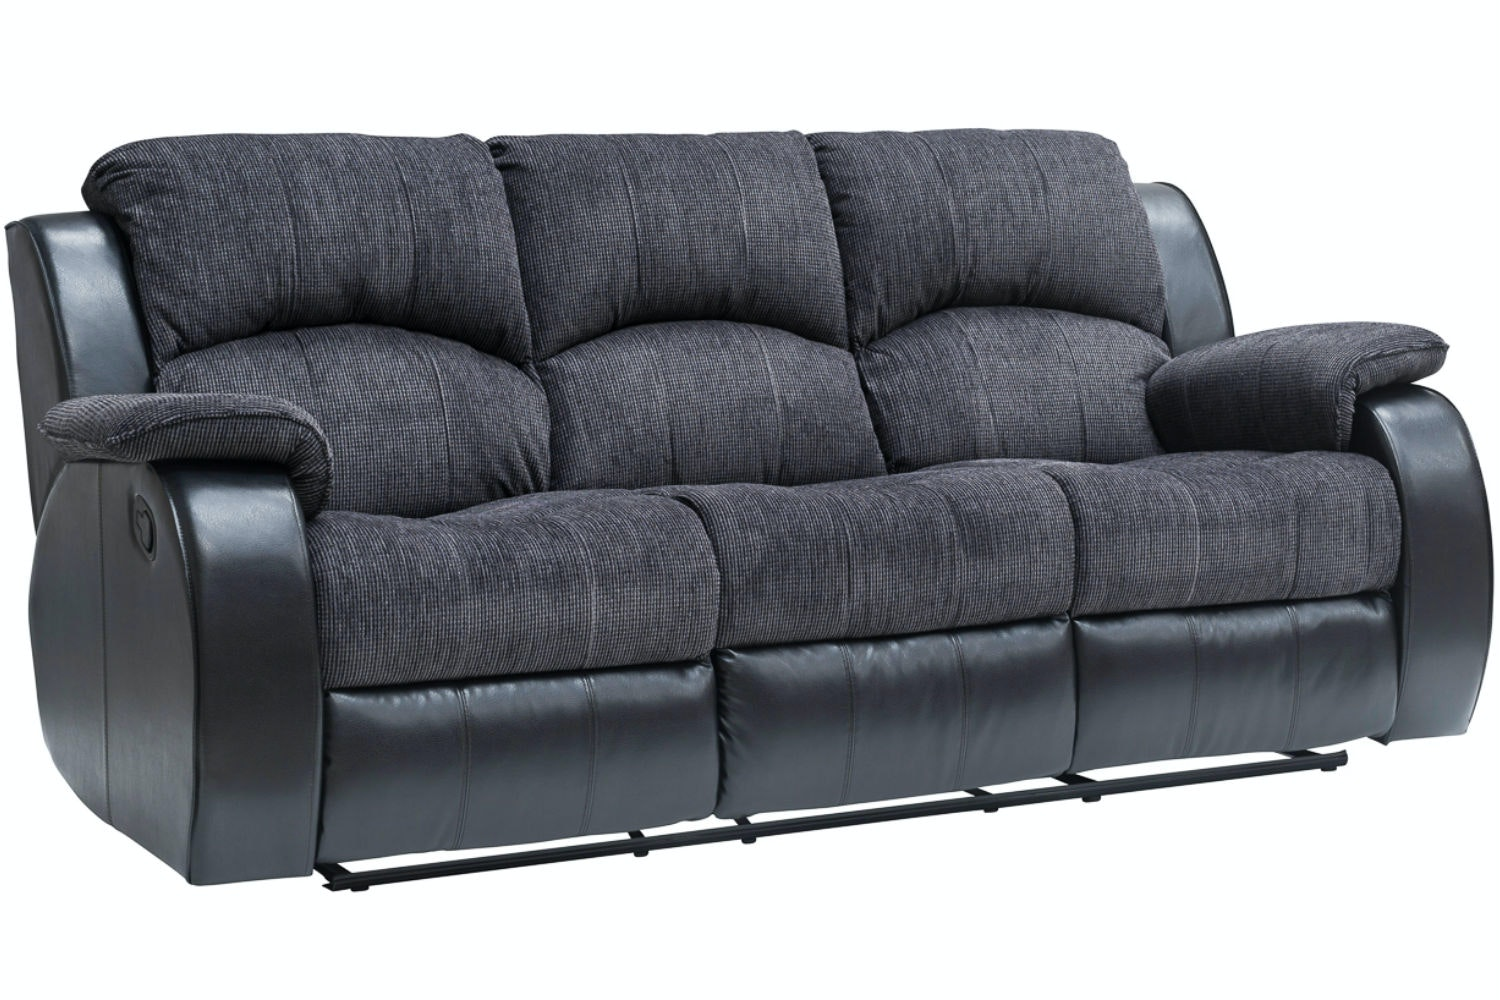 3 Seater Sofa Recliner Anton Reclining Leather 3 Seater  : 3seatersofa1 from thesofa.droogkast.com size 1500 x 1000 jpeg 156kB